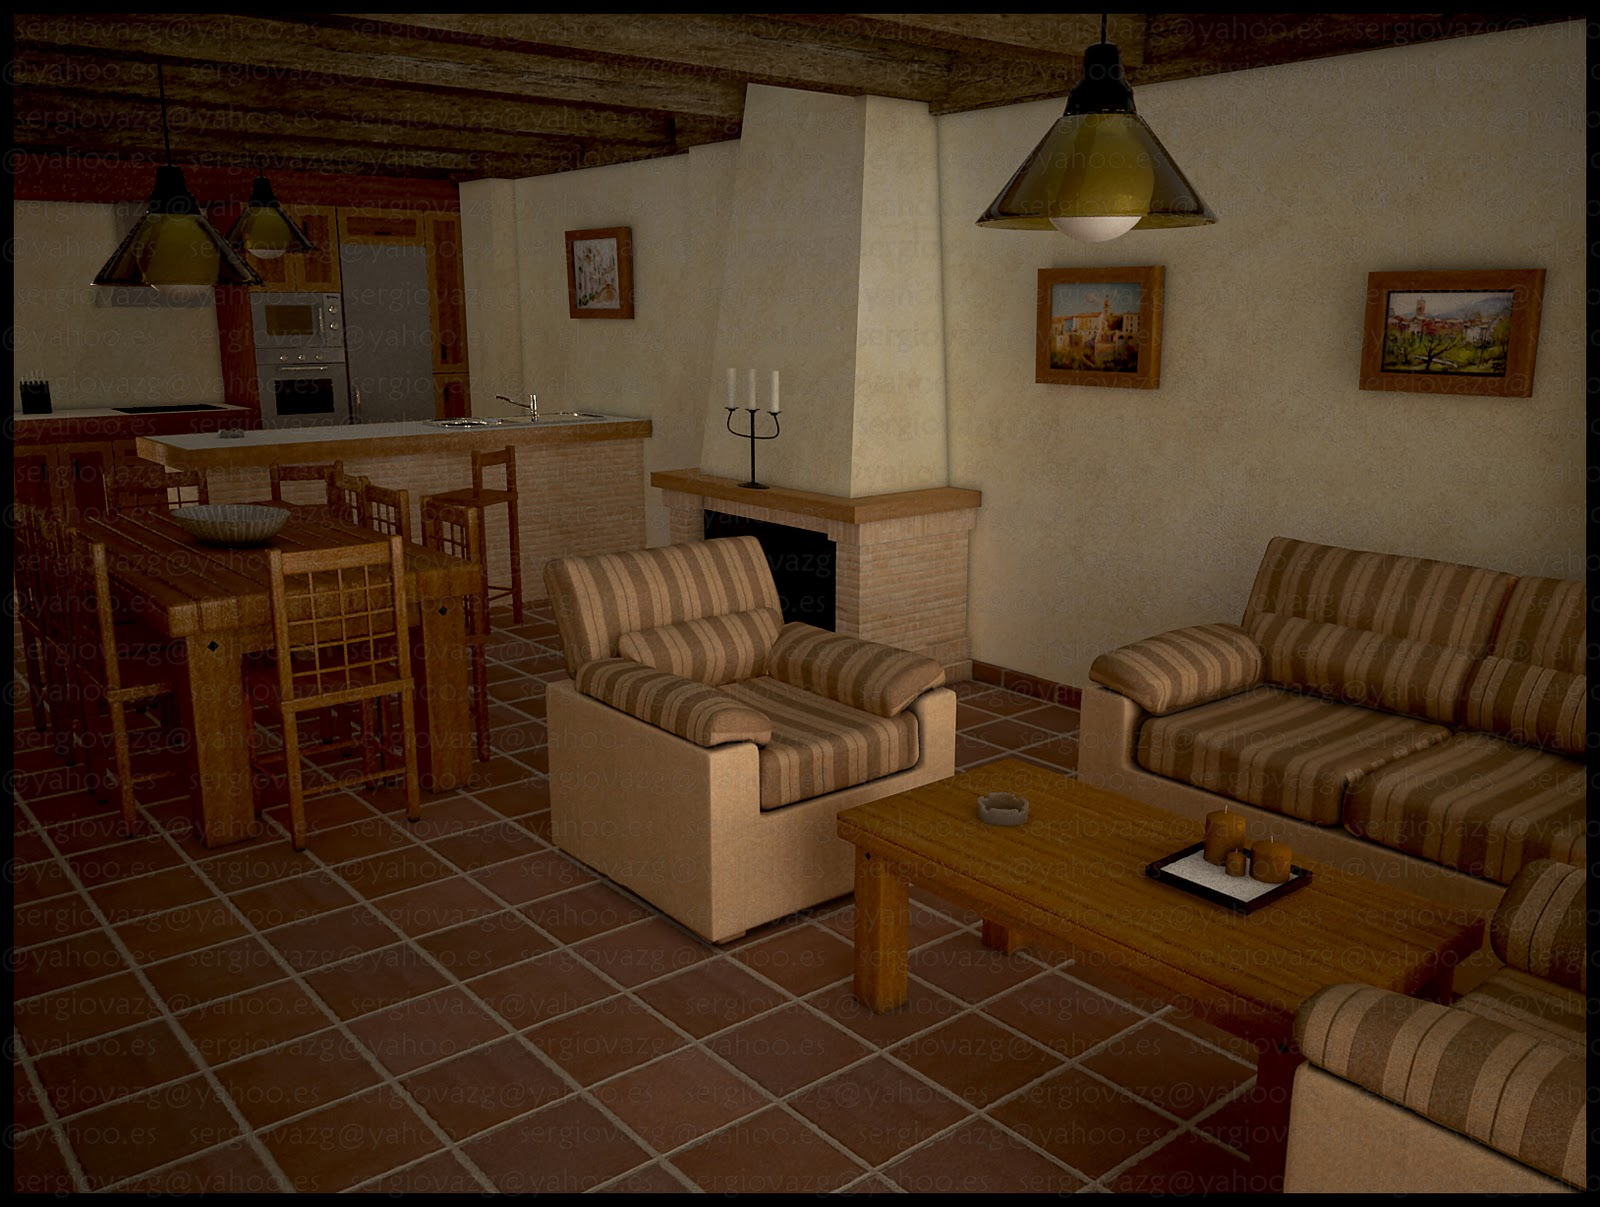 Interior casa rural for Casas de ensueno interiores